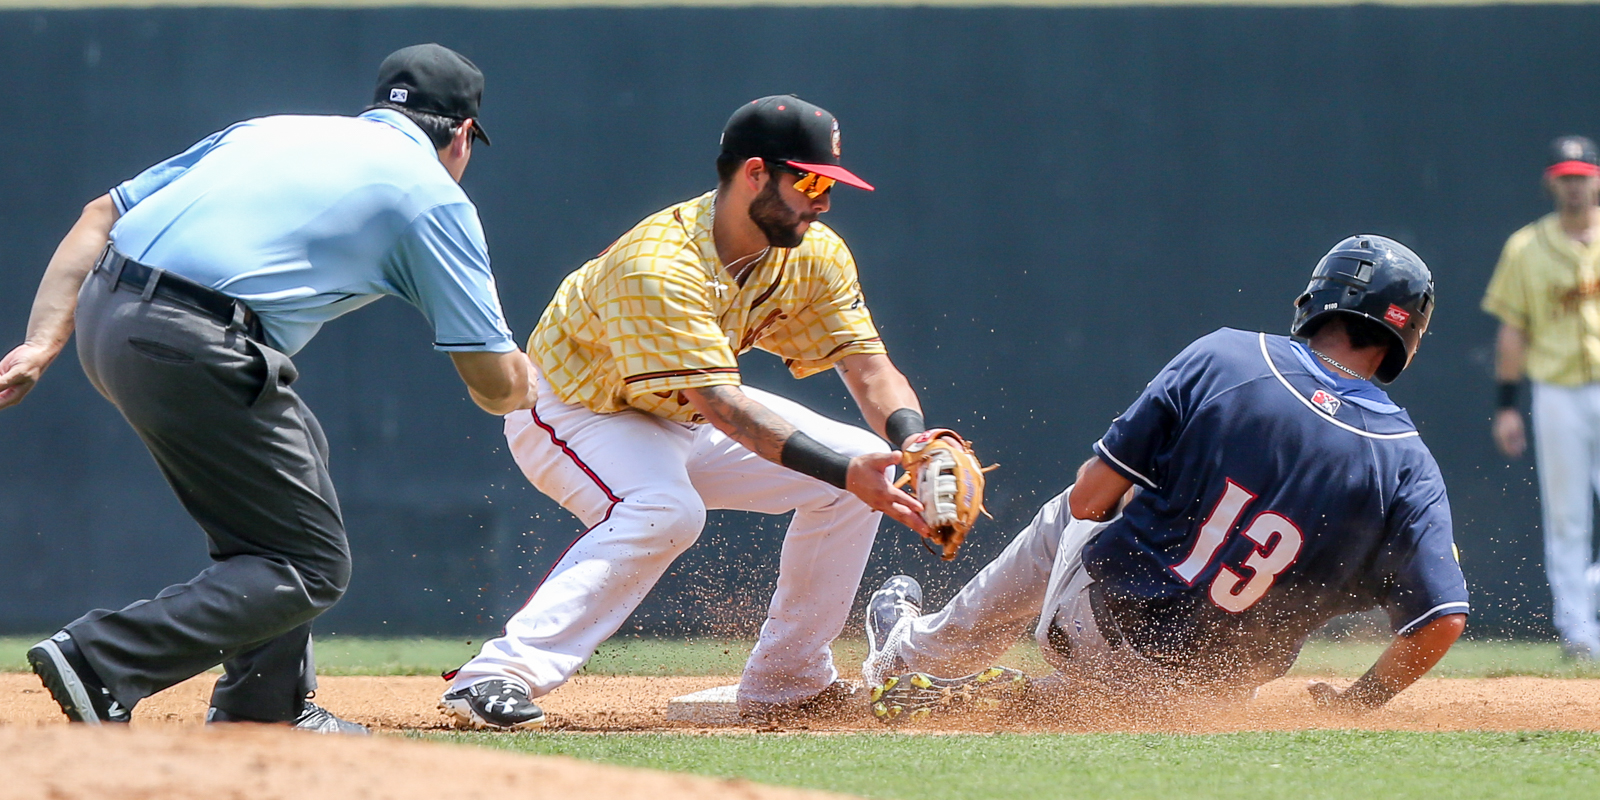 New Hampshire's Emilio Guerrero slides under C.J. Hinojusa's attempted tag at 2nd base. The 5th inning steal set up Guerrero's subsequent score to put the Fishercats up 1-0 at the Diamond Sunday afternoon, July 31, 2016. (Skip Rowland)